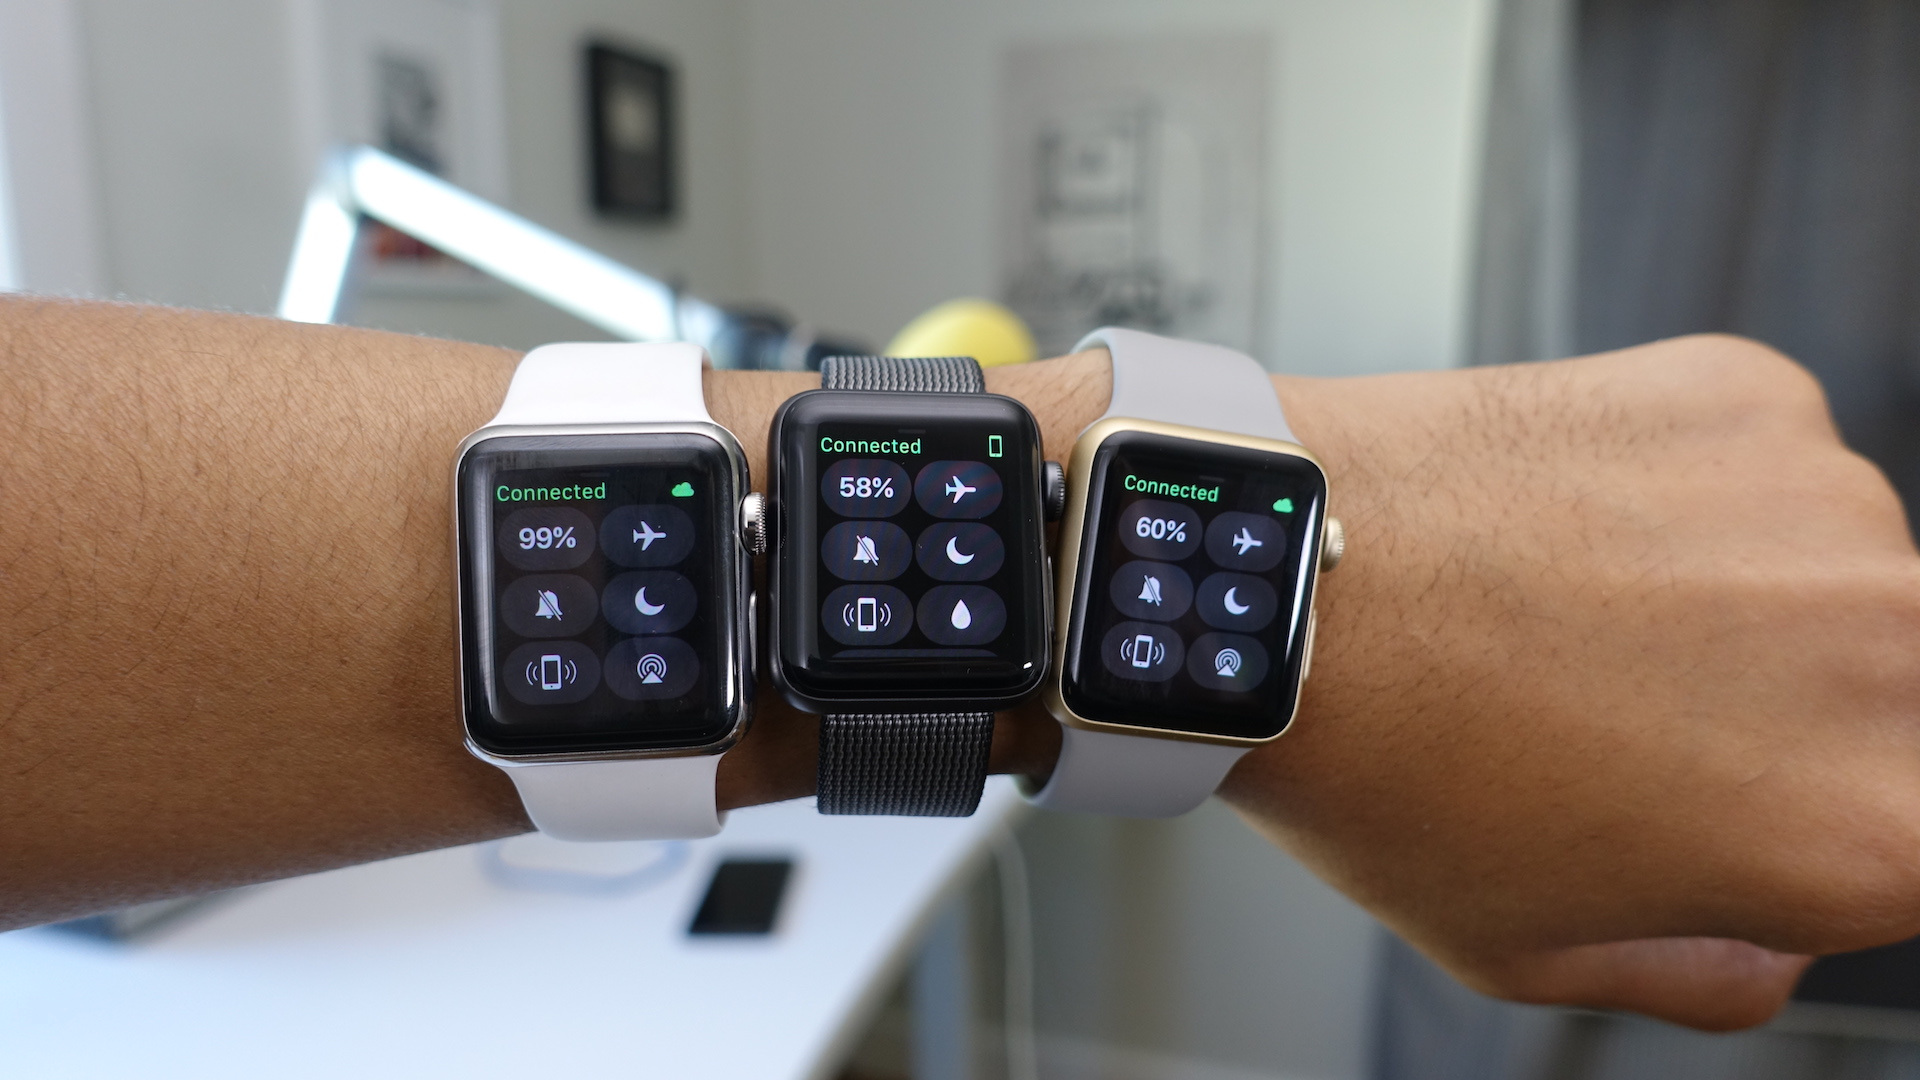 apple-watch-sport-vs-apple-watch-series-1-vs-apple-watch-series-2